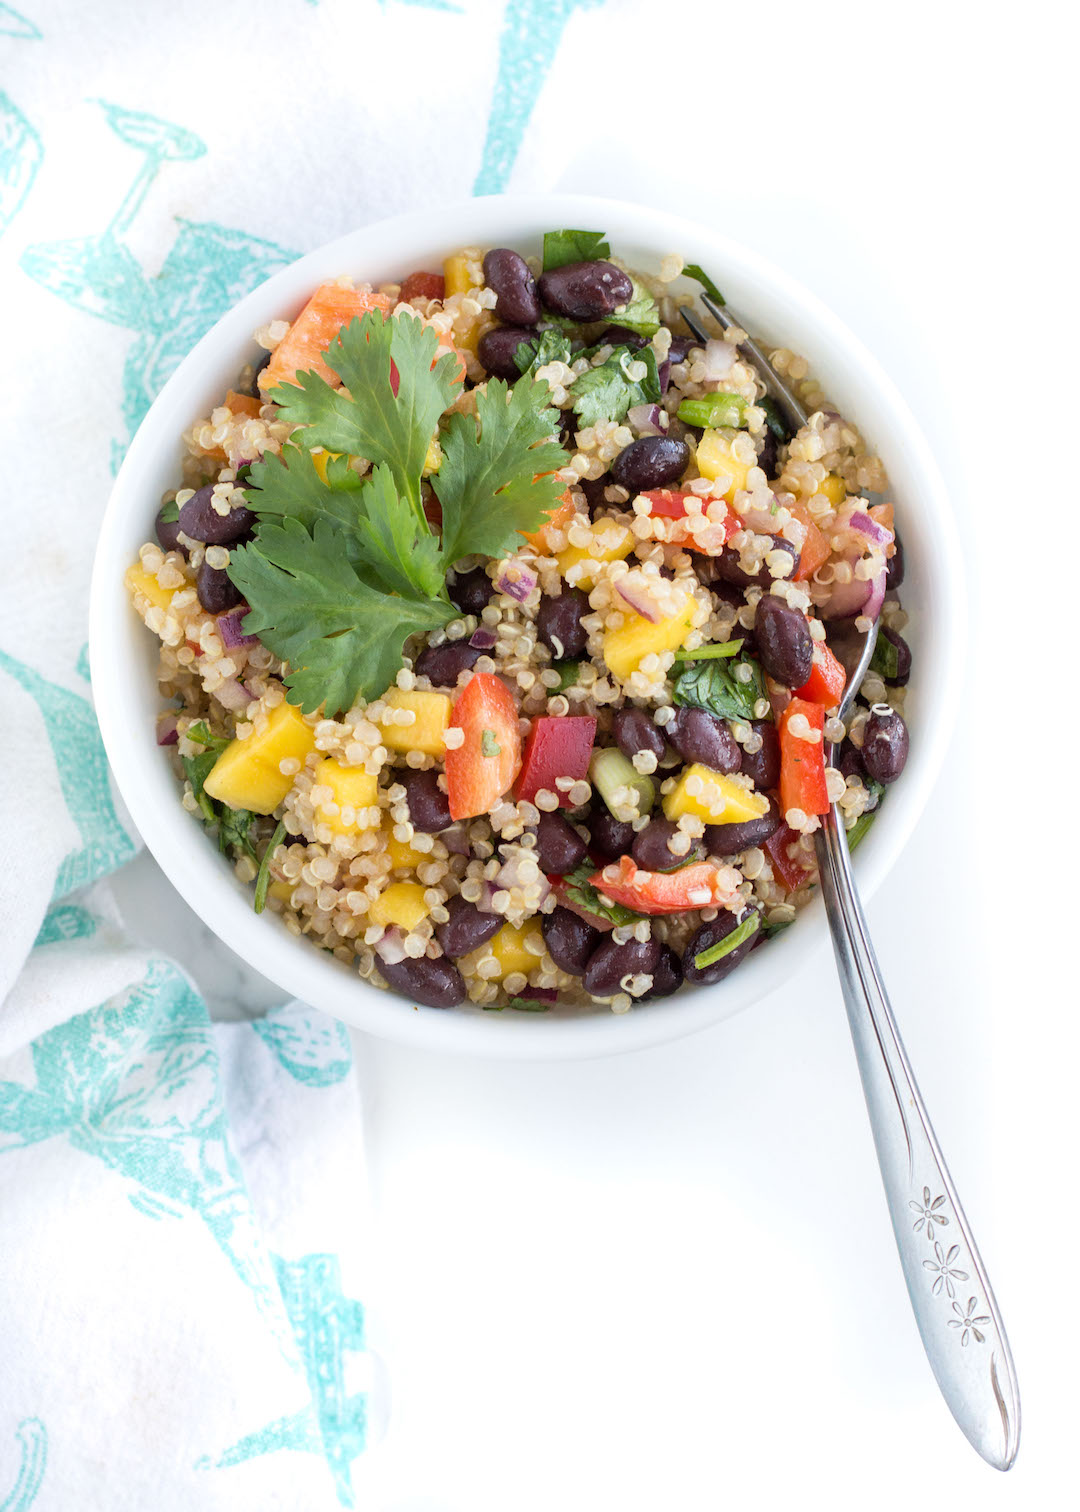 Easy to Make Quinoa Salad